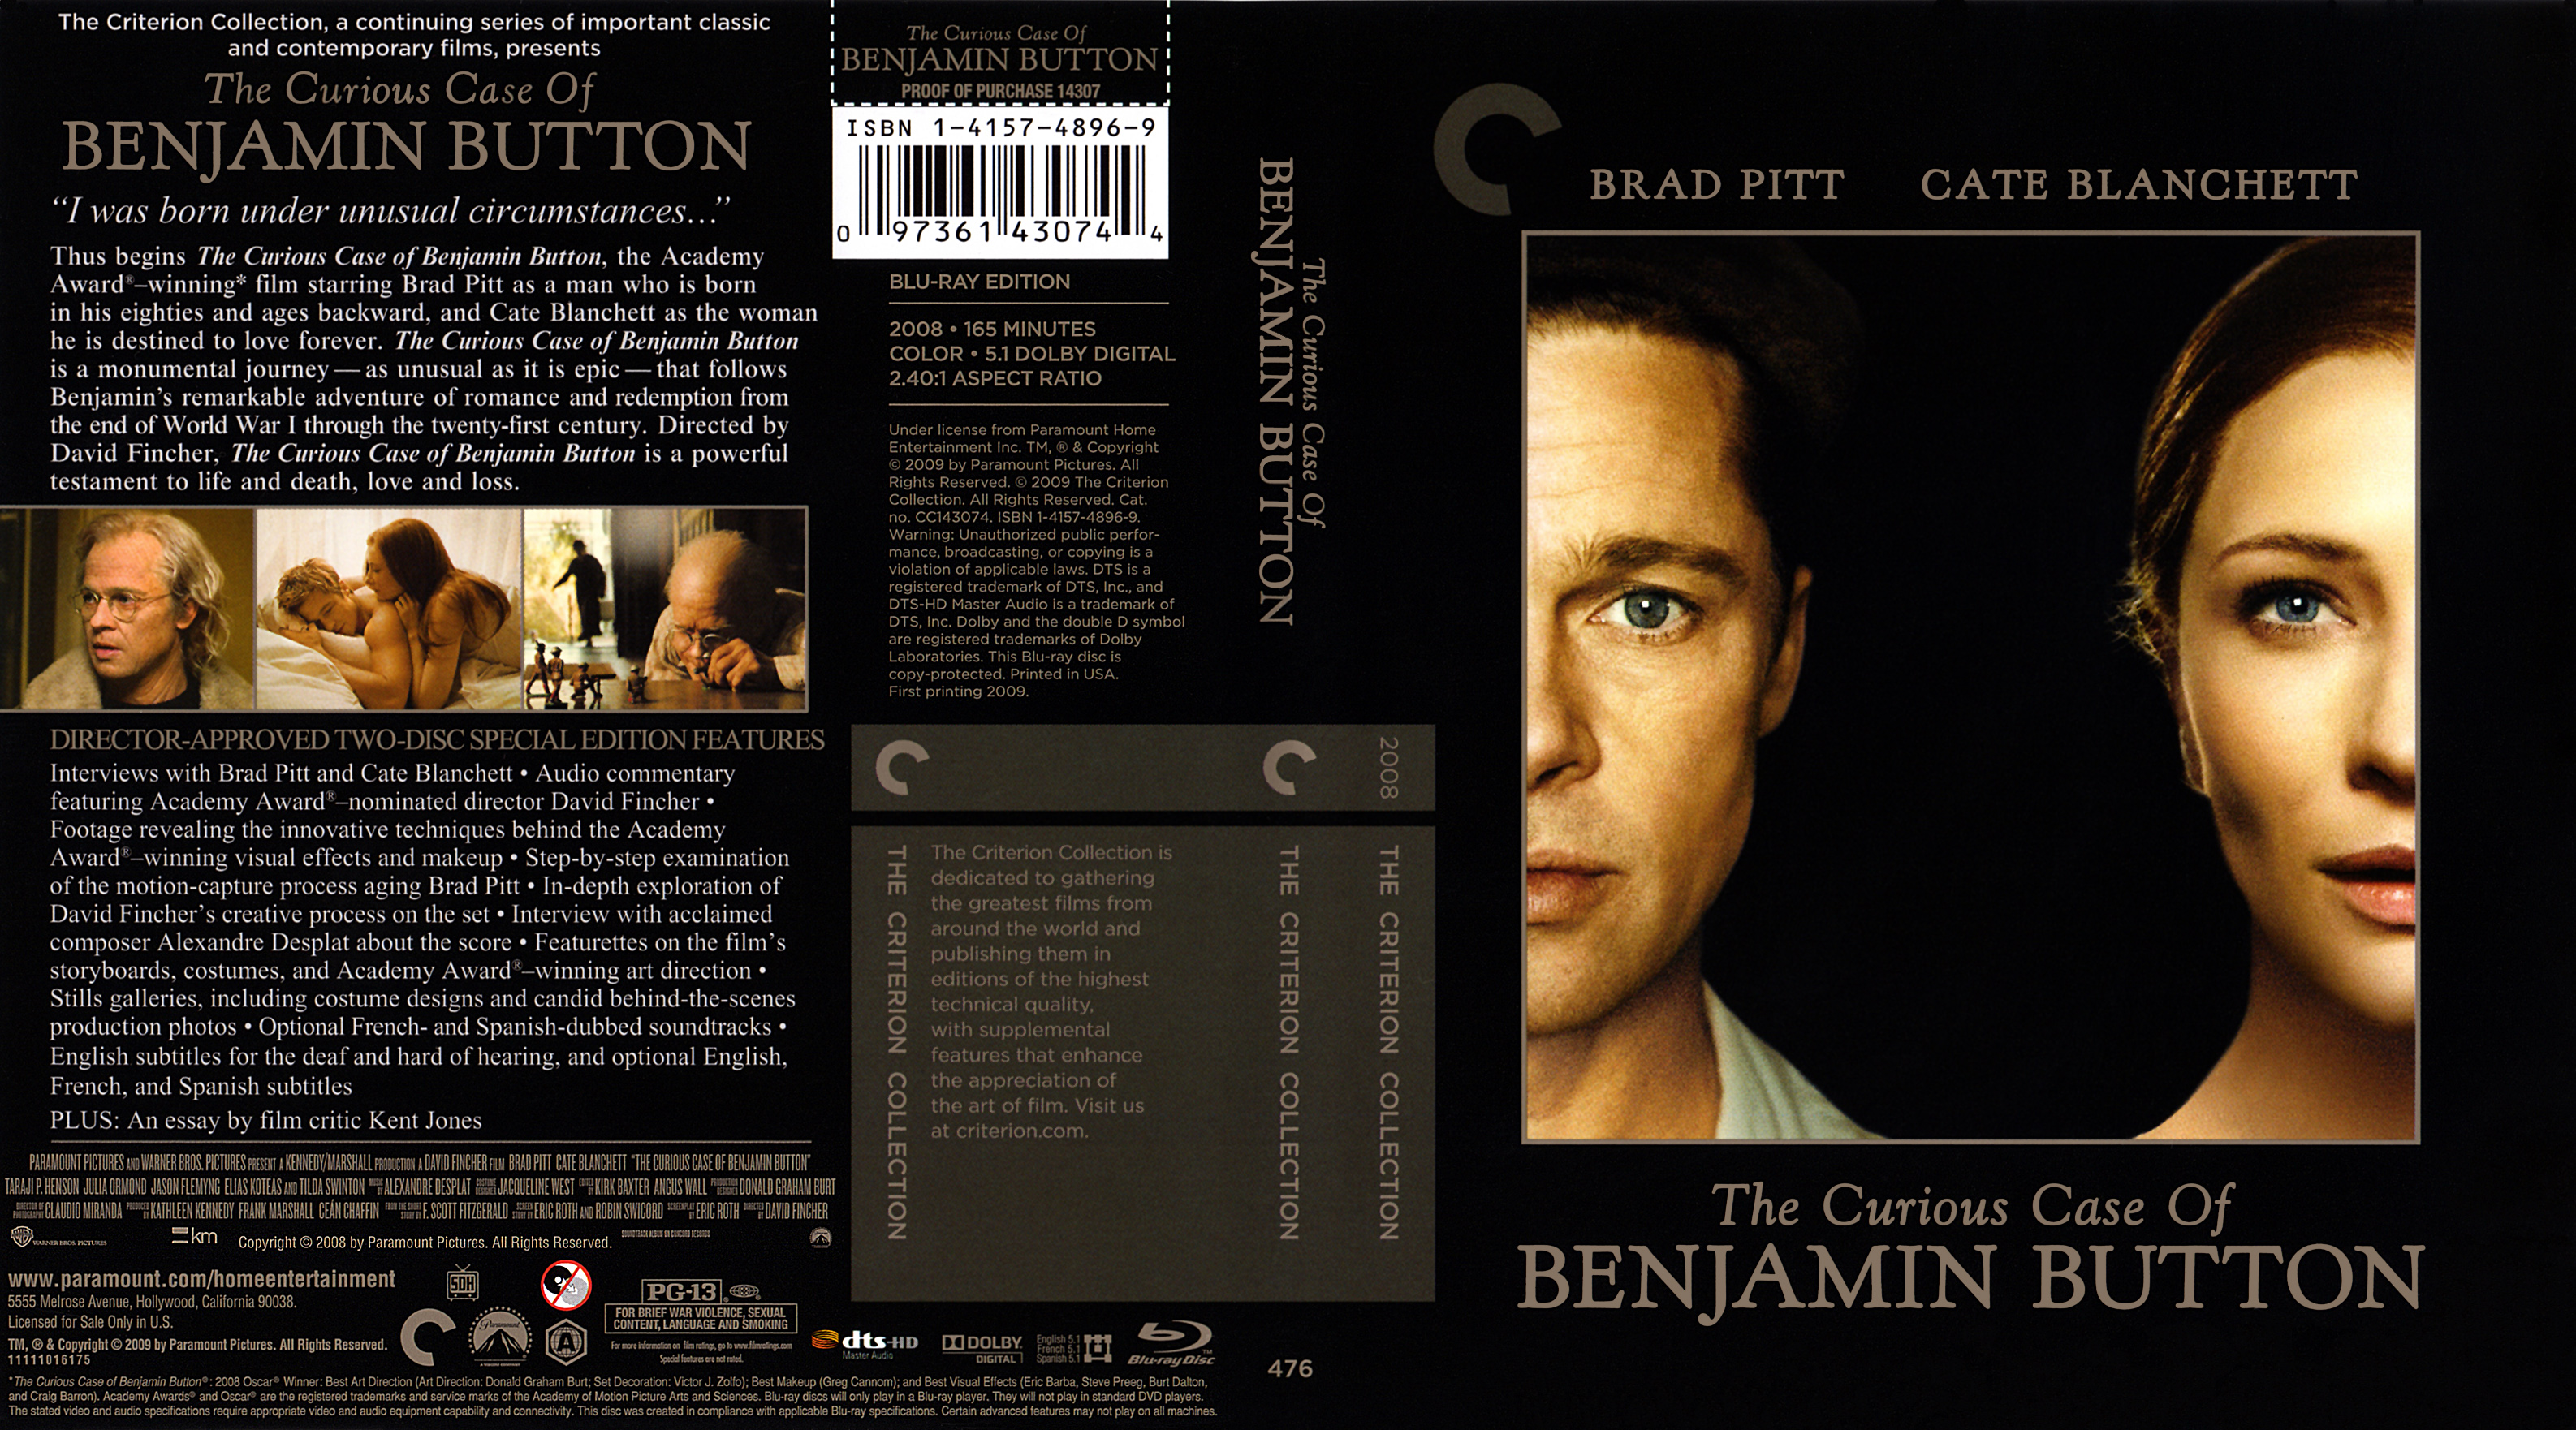 an analysis of the curious case of benjamin button essay The curious case of benjamin button good sob to watch this film the film consists of a man called benjamin who says to one girl  i was born under unusual curcumstances which indeed he was.